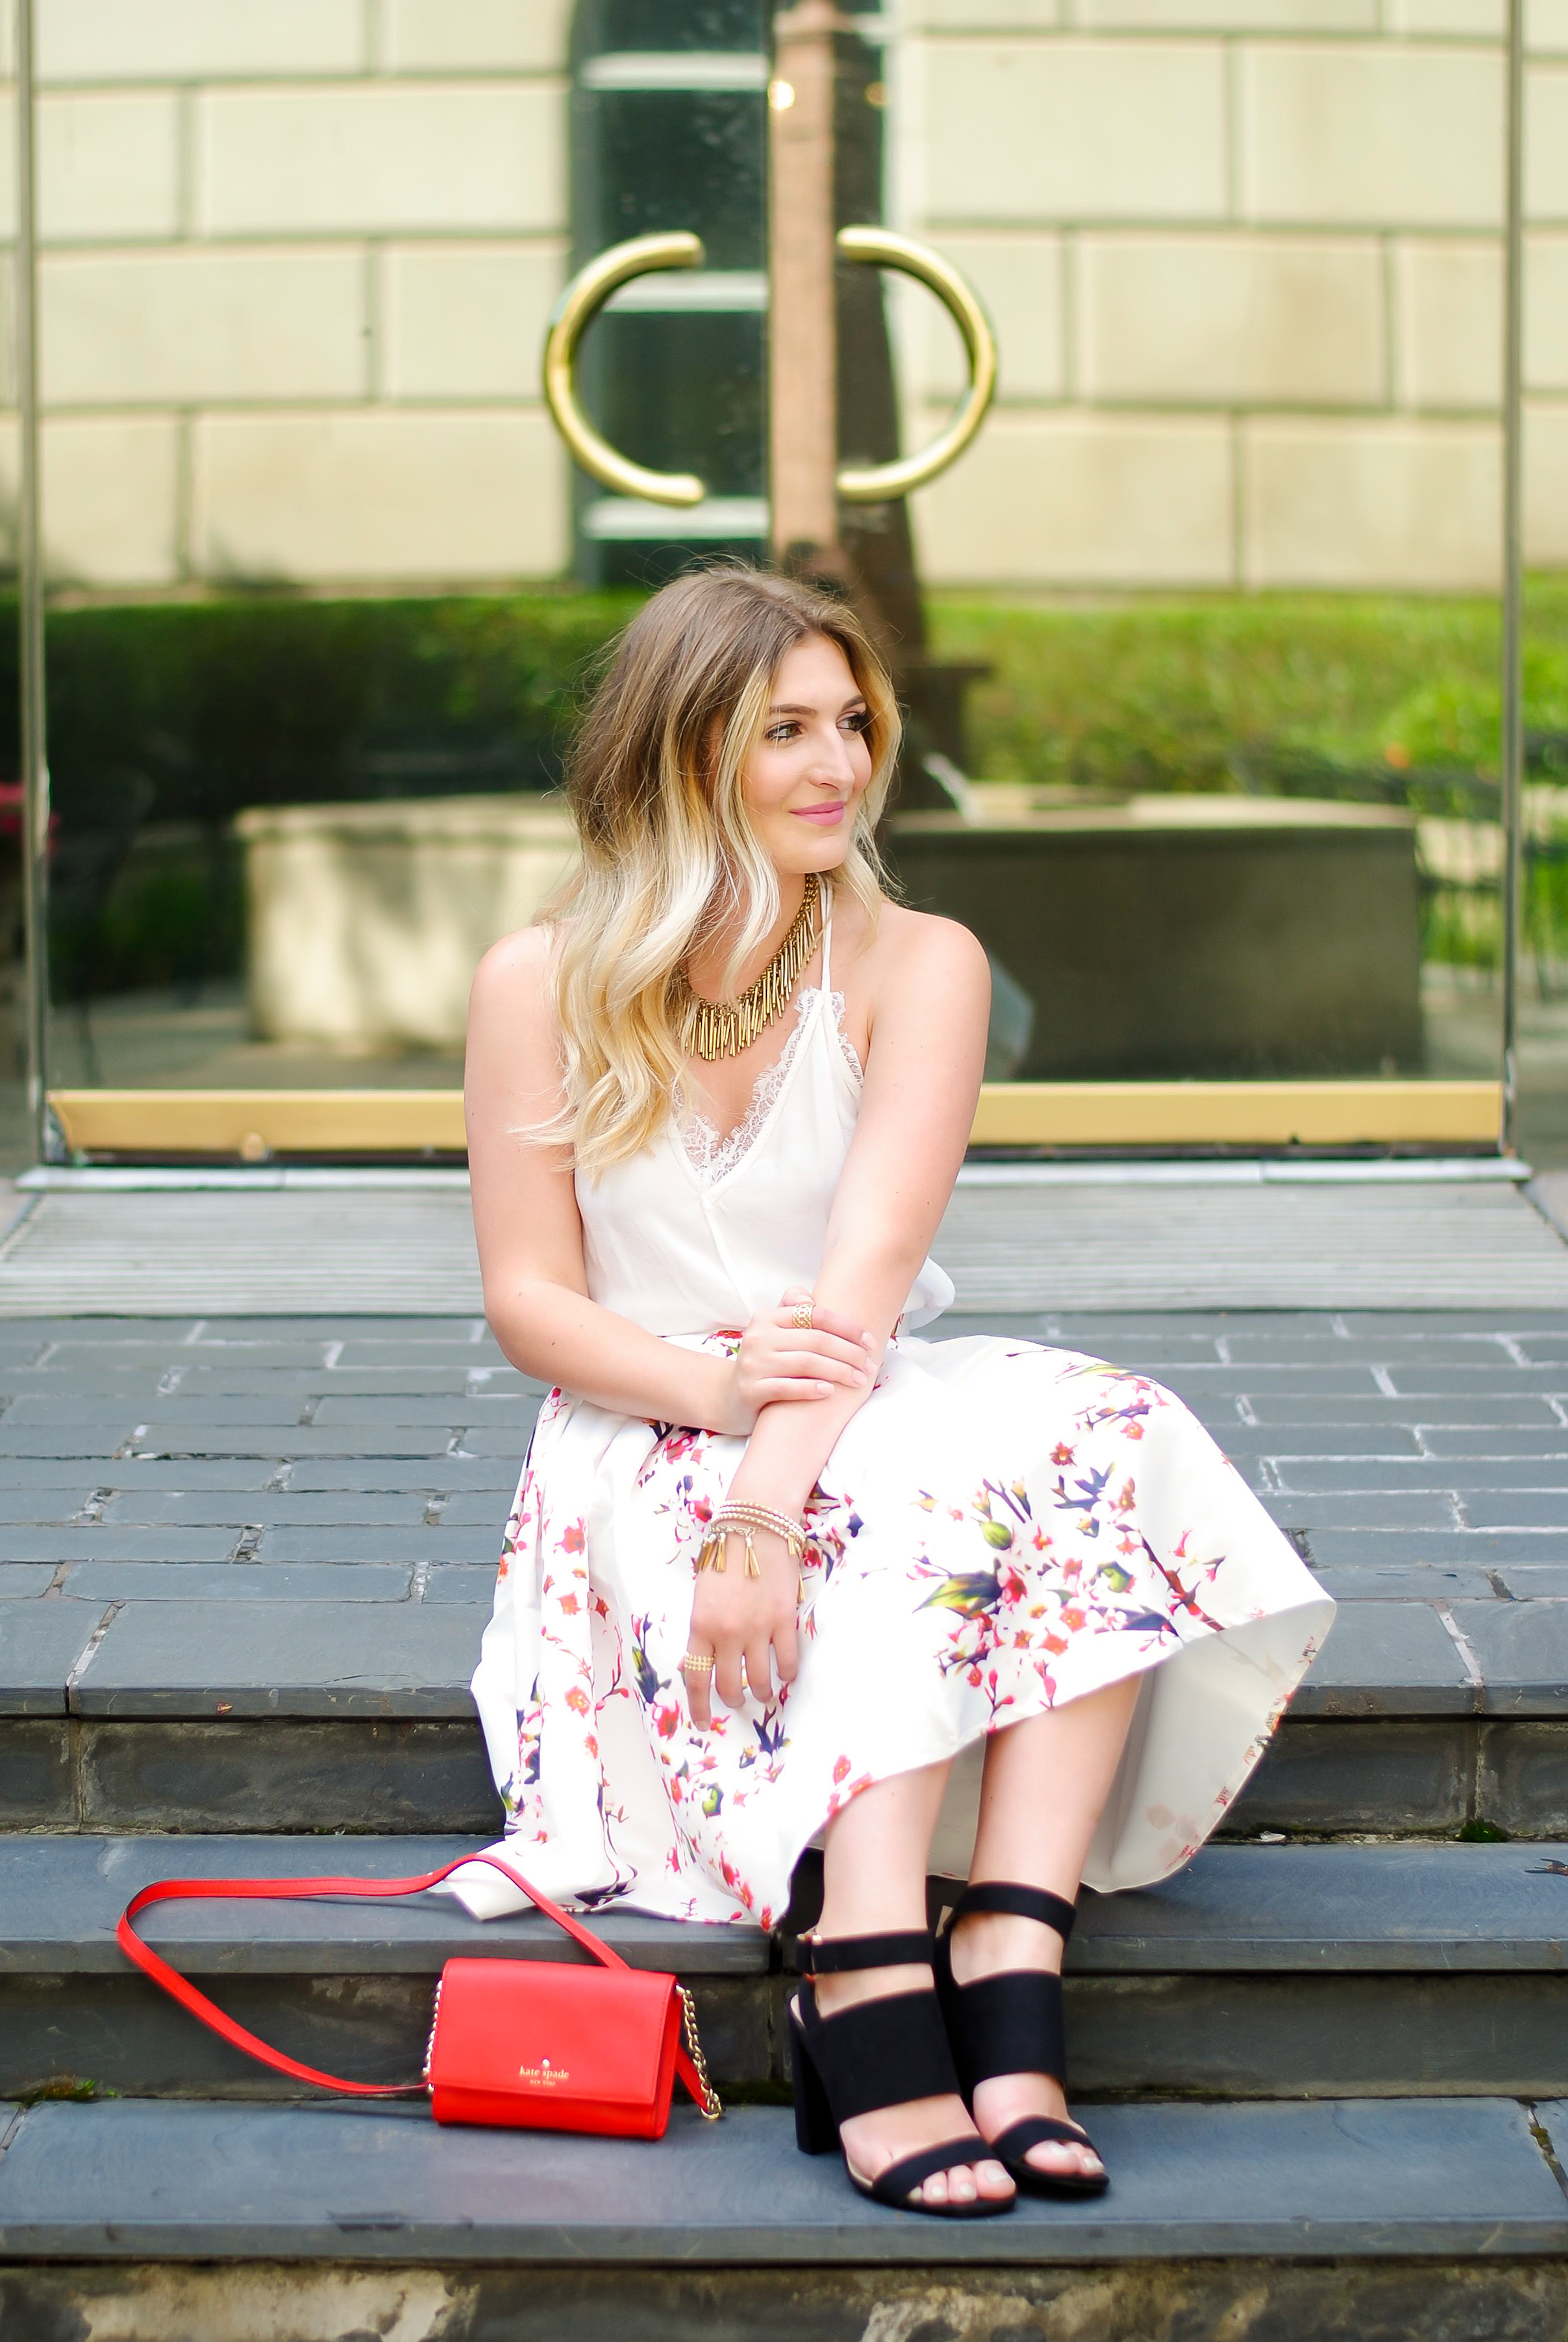 SheIn floral midi skirt look | Audrey Madison Stowe Blog